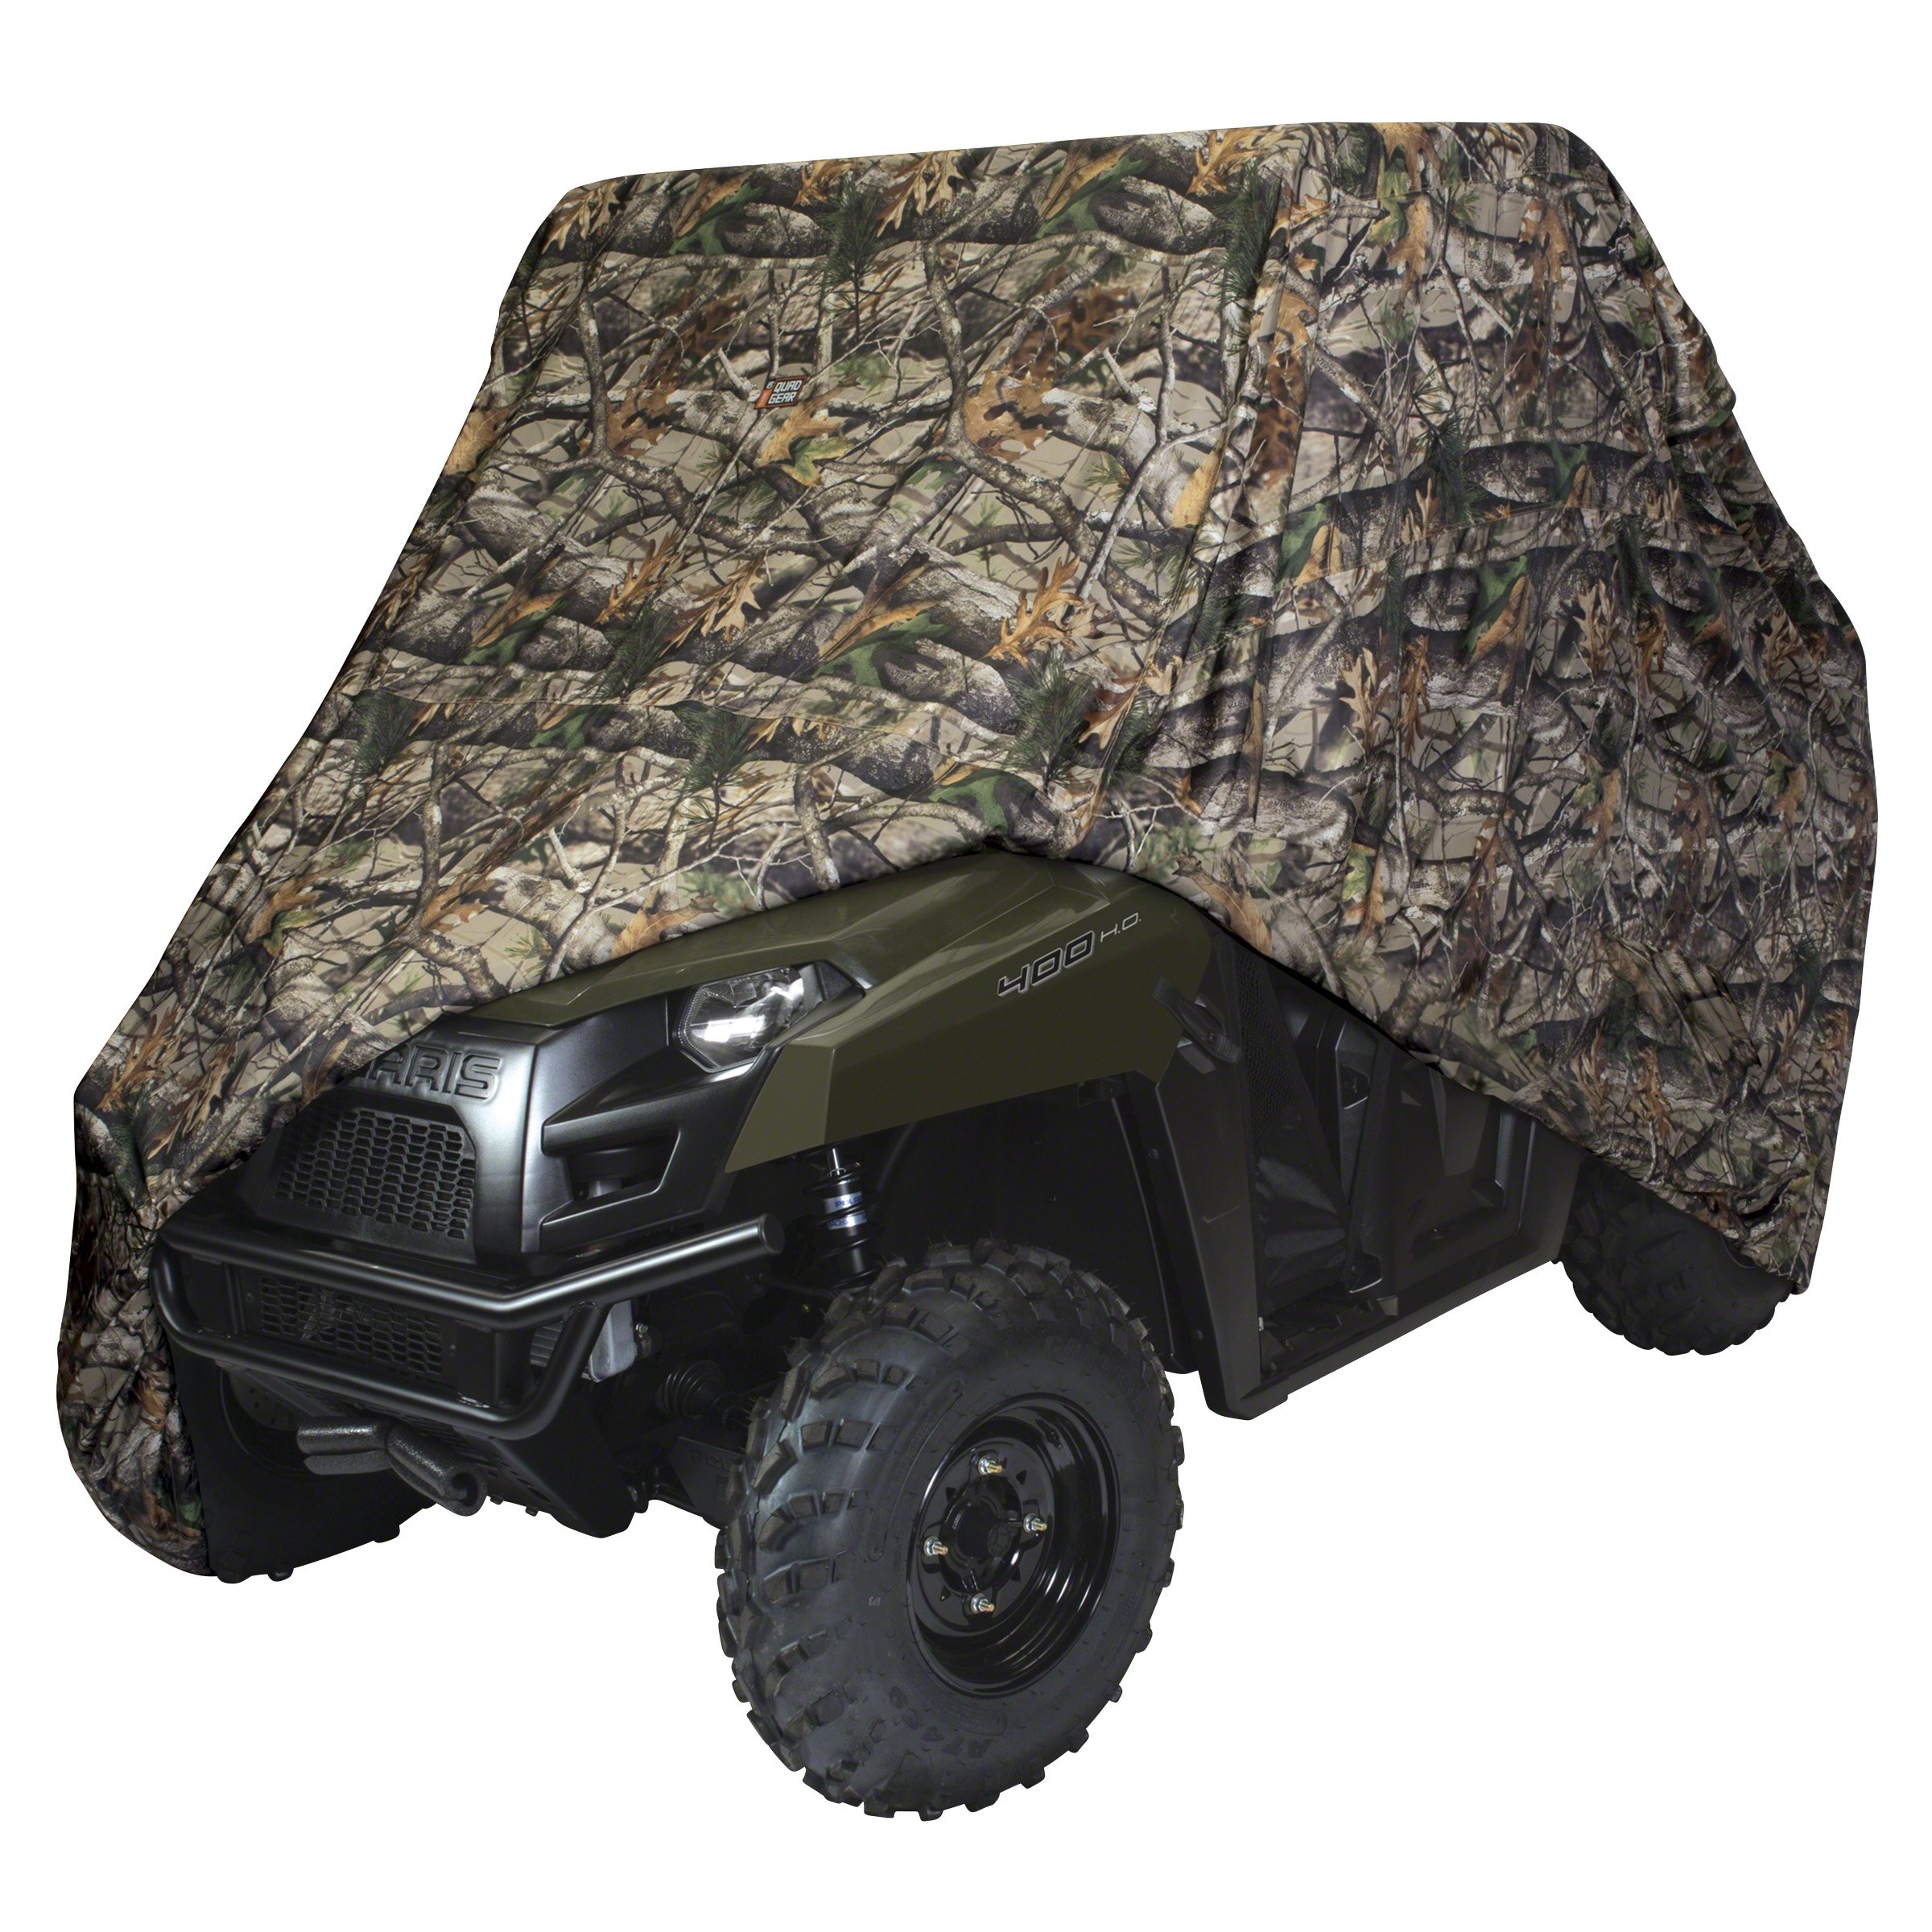 Classic Accessories 18-073-056001-00 Next Vista G1 Camo QuadGear UTV Storage Cover (For Large Size 2-3 Passenger UTVs Up To 125''L 64''W 70''H)